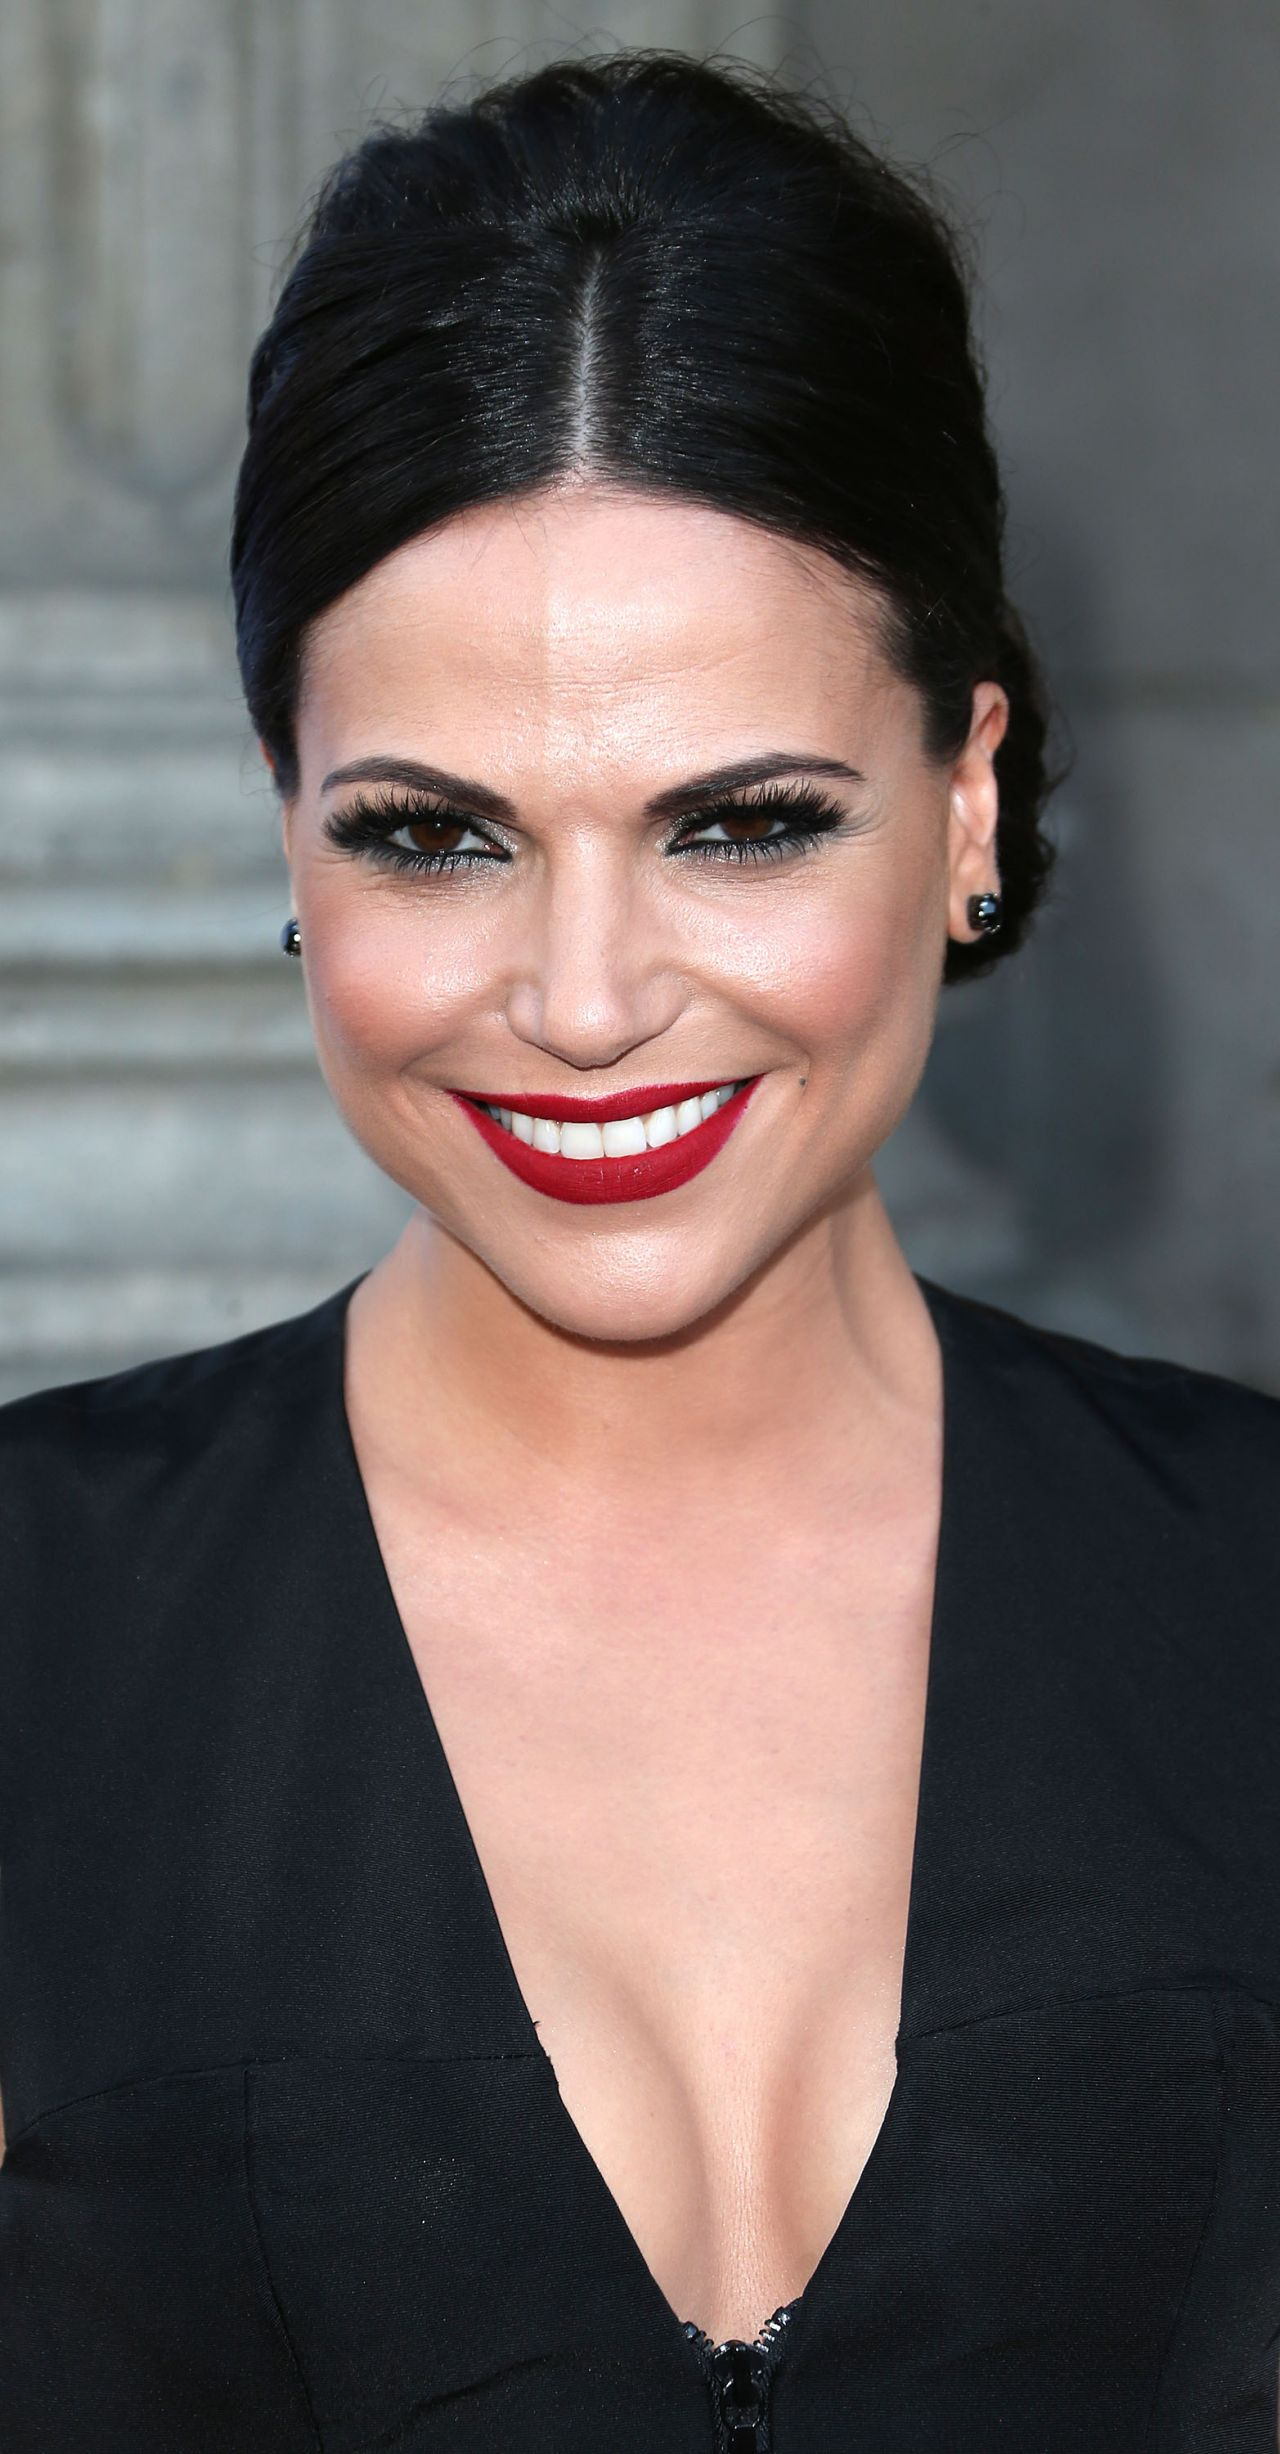 Lana Parrilla Once Upon A Time Season 4 Screening In